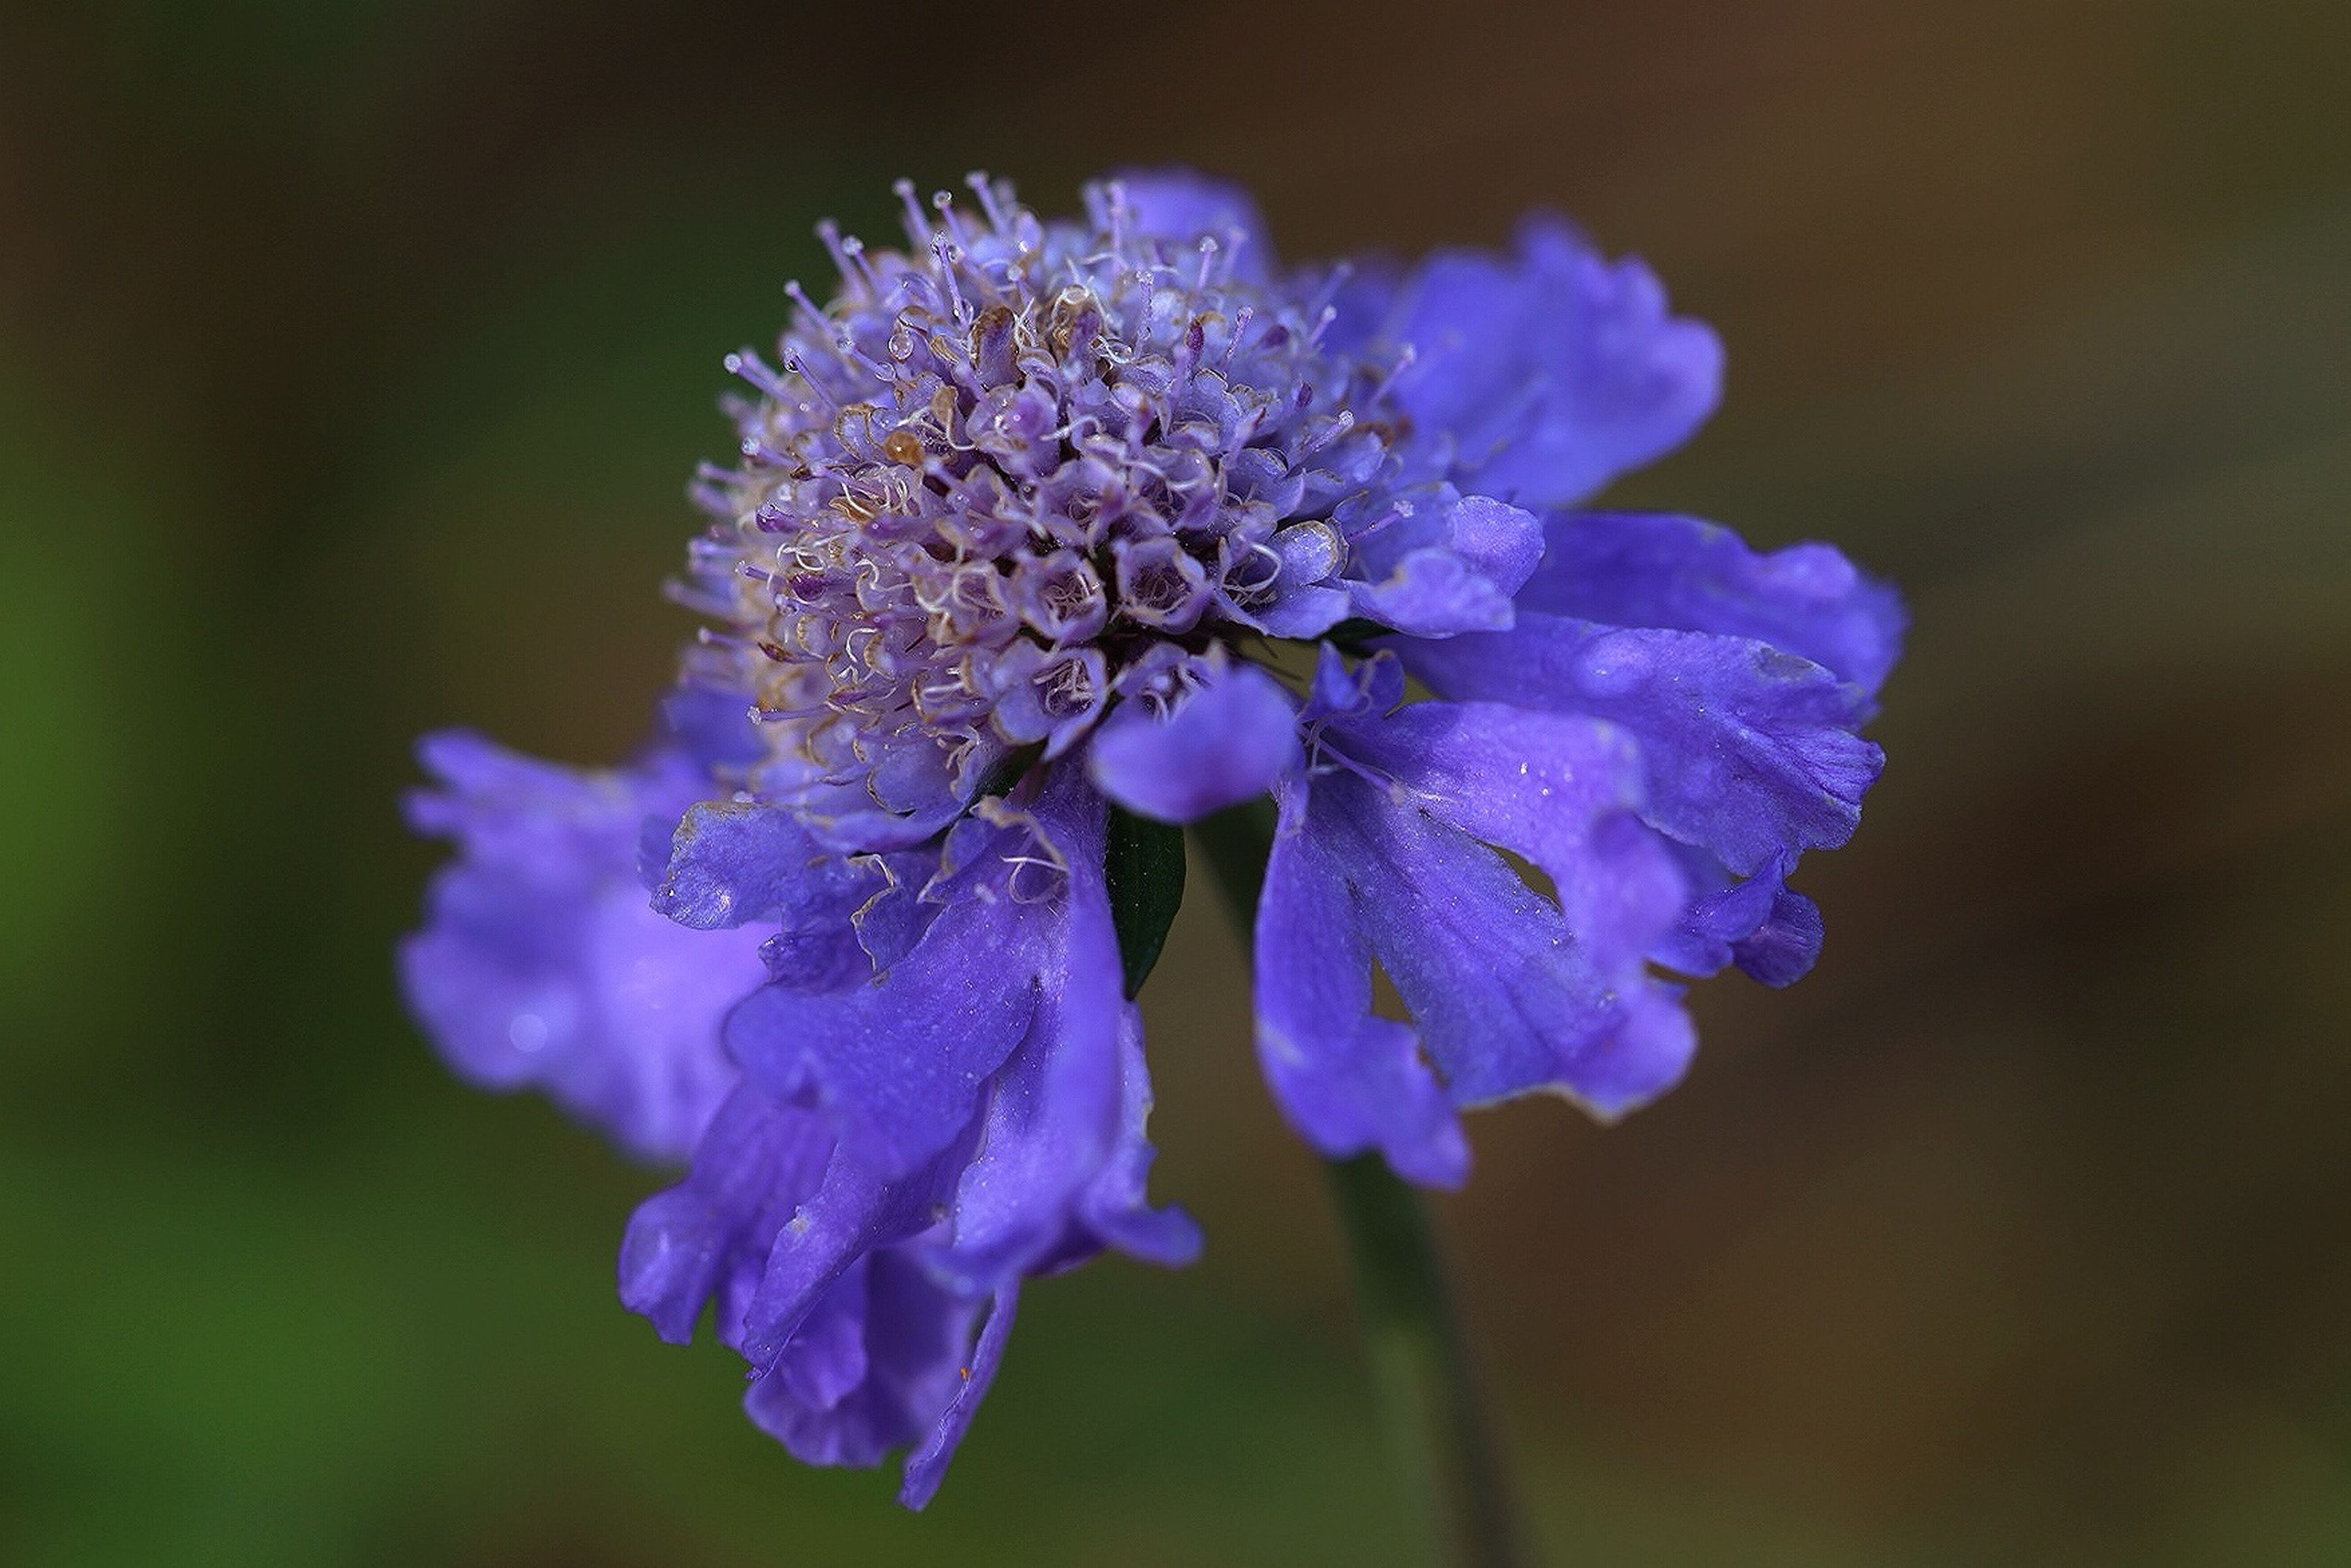 flower, freshness, fragility, petal, purple, flower head, close-up, growth, beauty in nature, focus on foreground, nature, blooming, plant, in bloom, selective focus, blossom, springtime, drop, season, outdoors